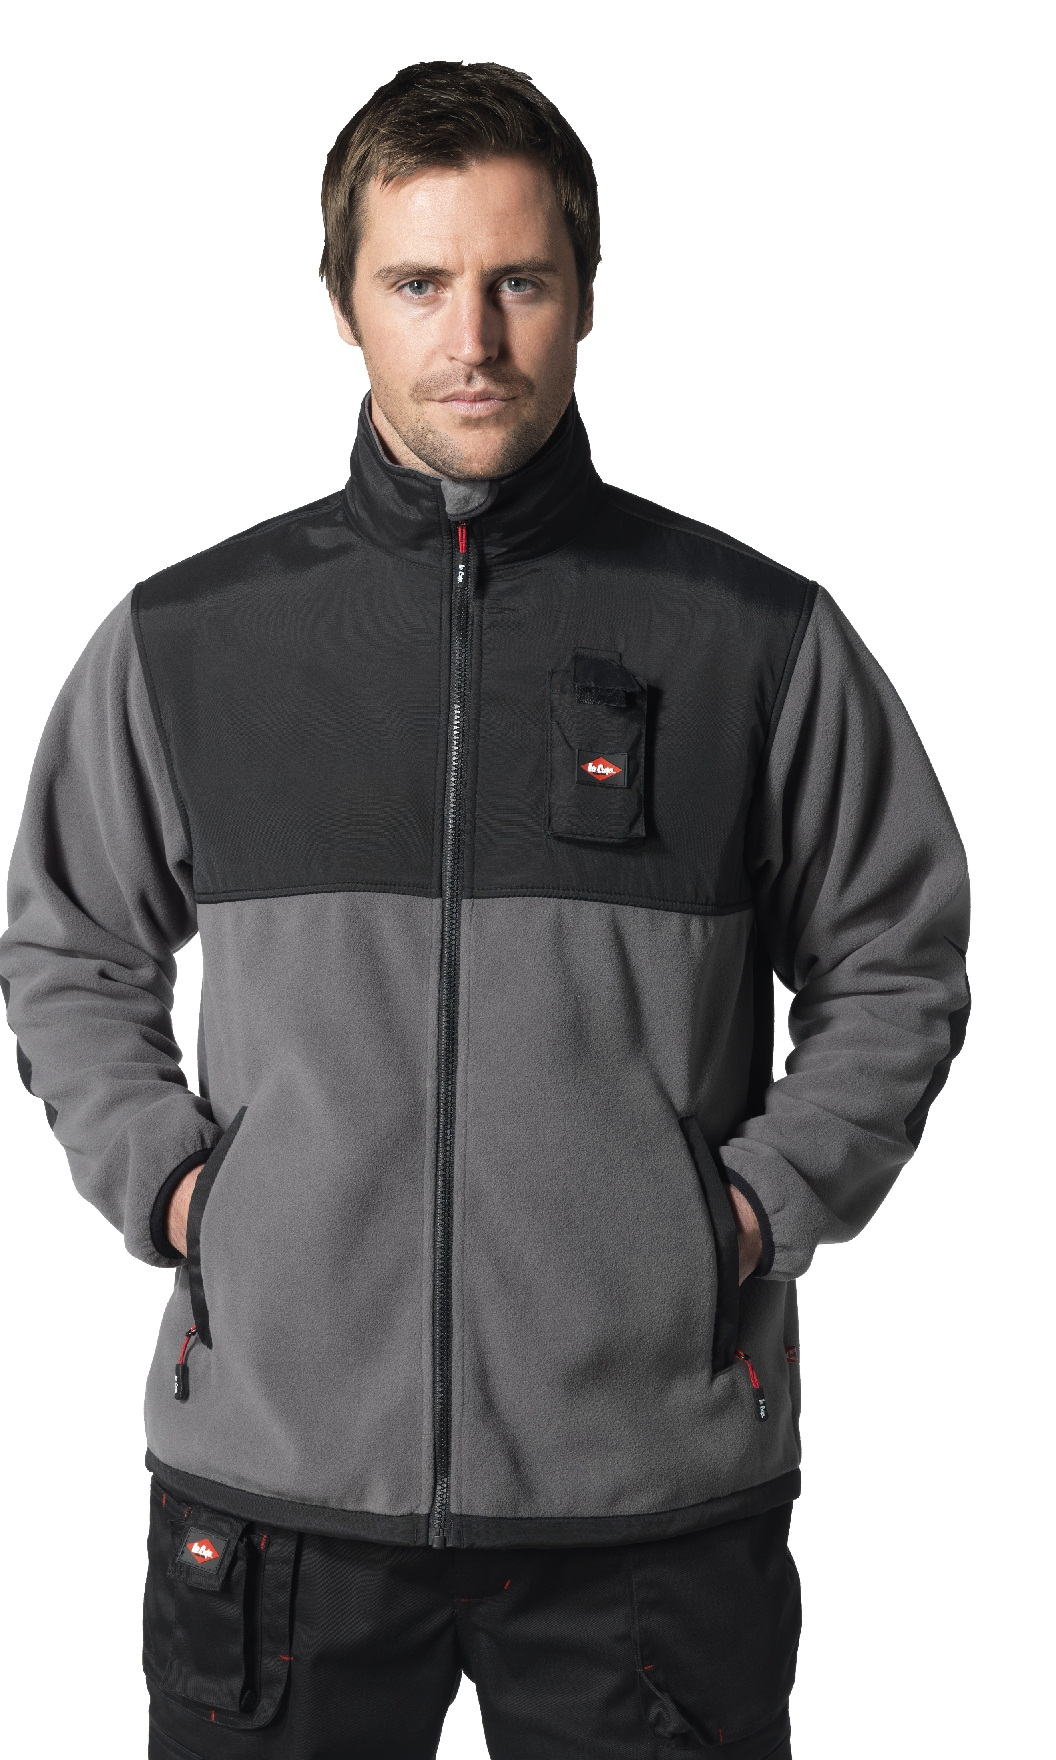 Lee Cooper Workwear Functional Polar Fleece Jacket